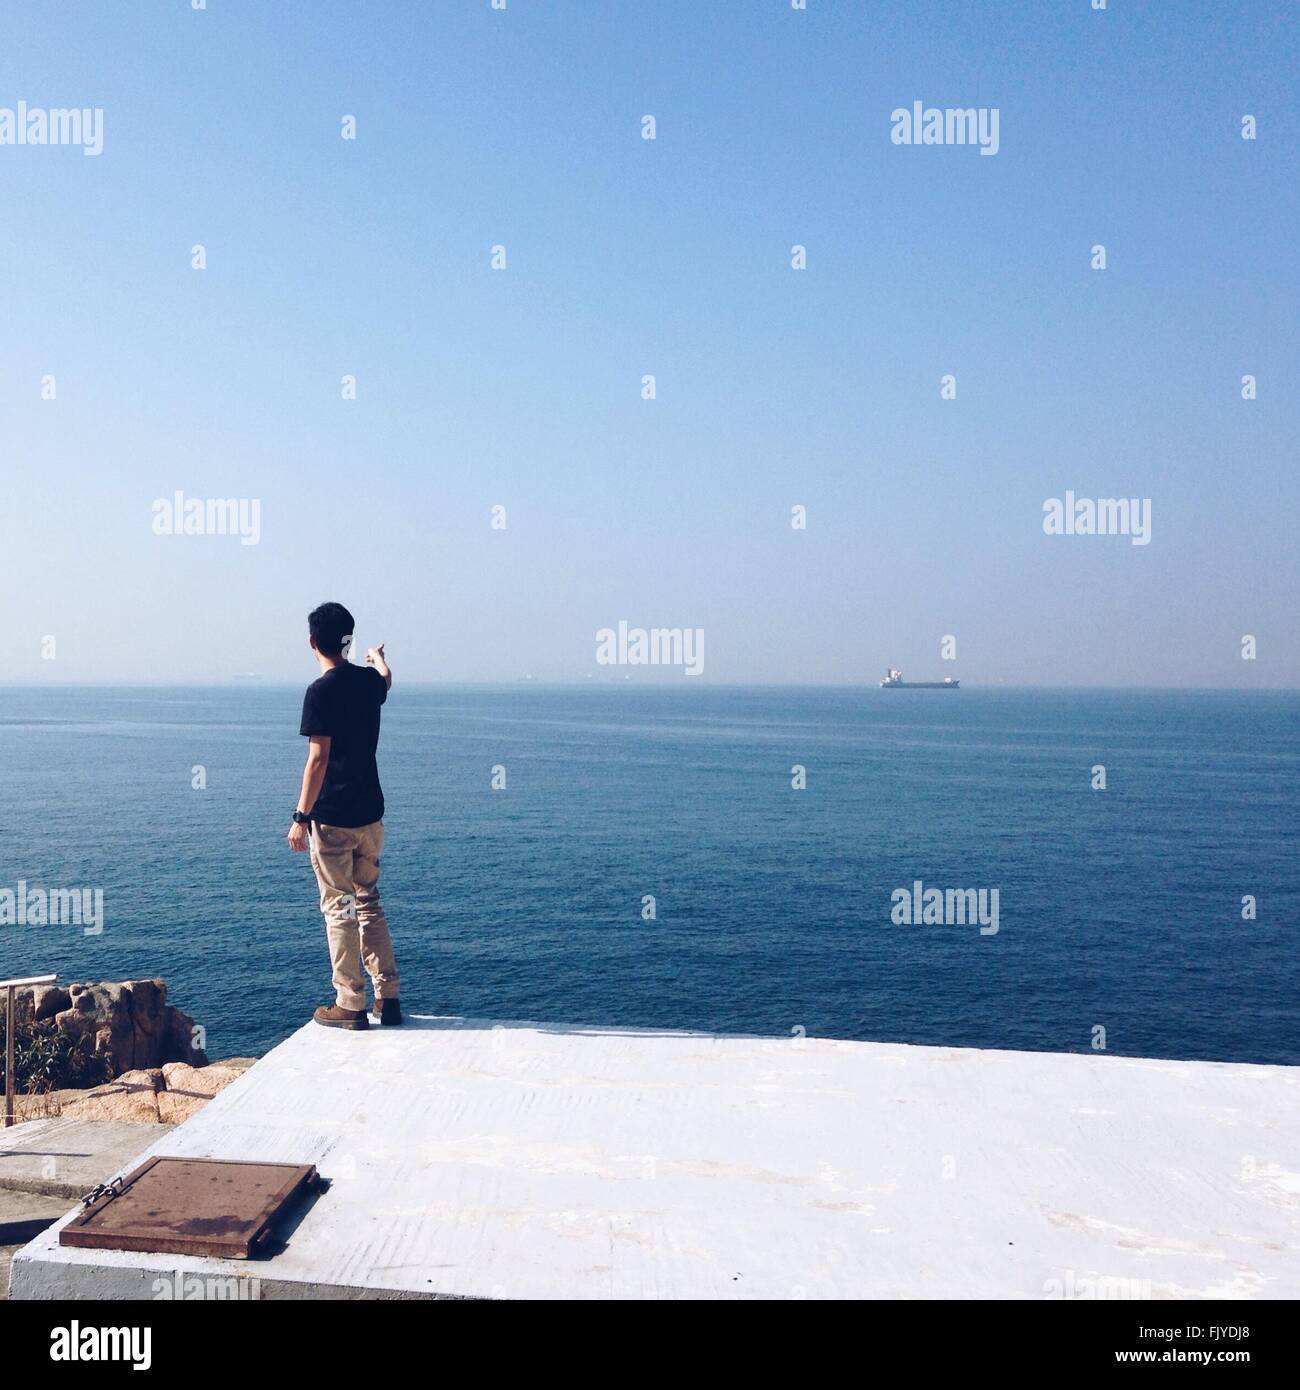 Fill Length Of Man Pointing Towards Ship In Sea Against Clear Blue Sky - Stock Image